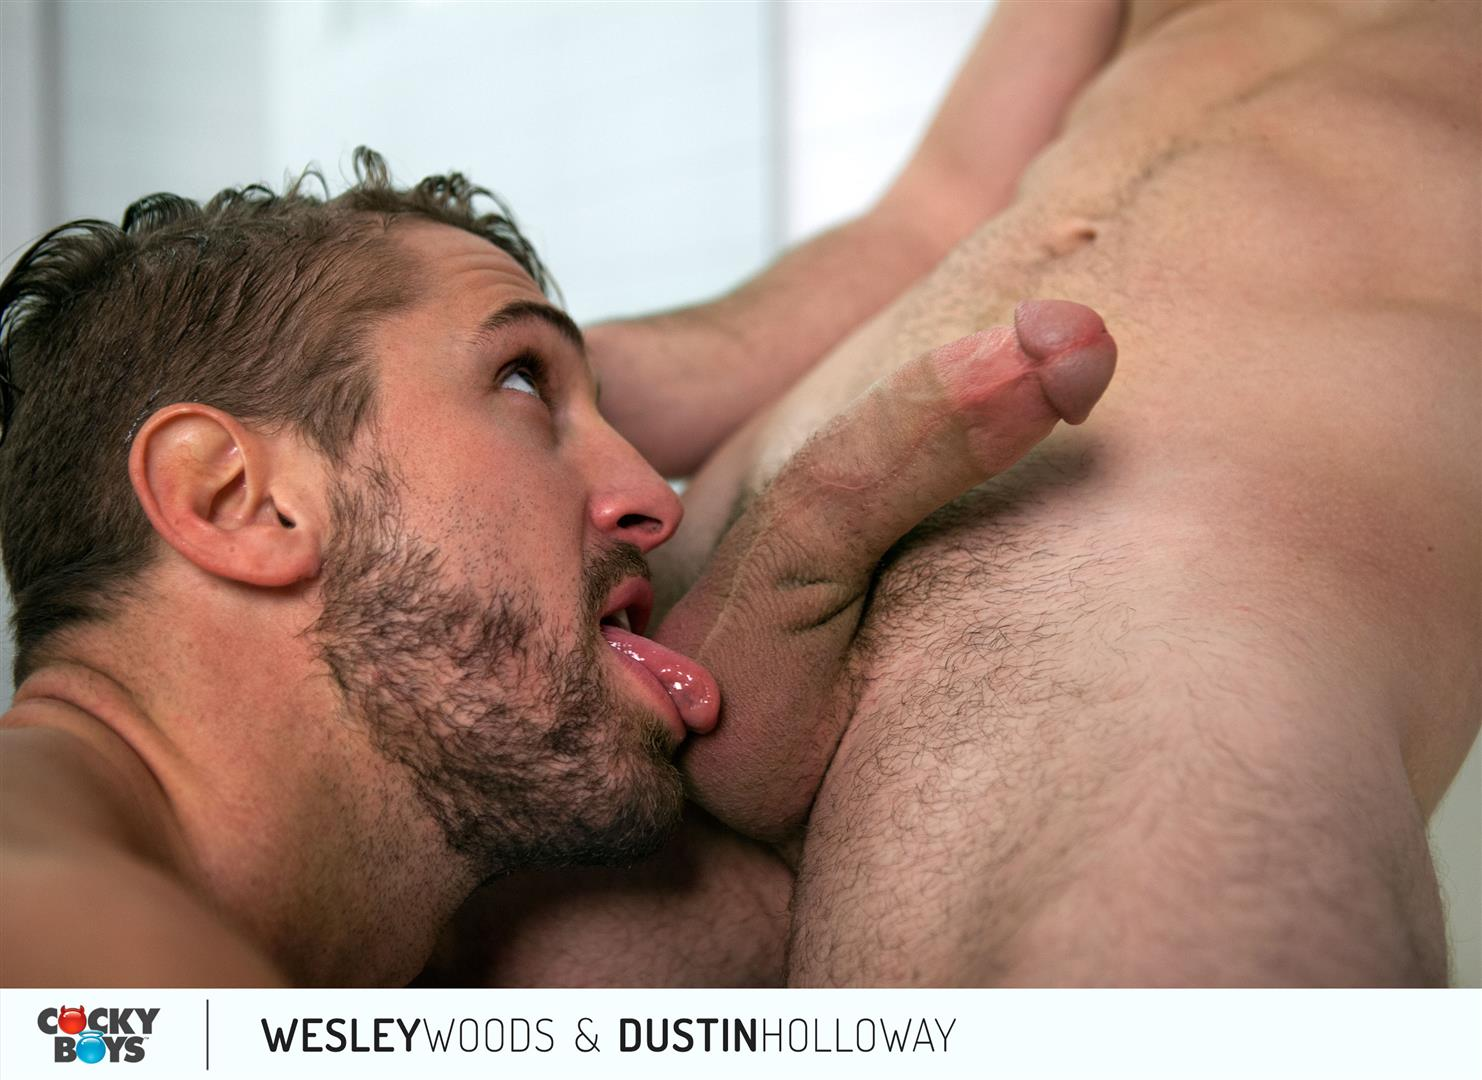 Cockyboys Wesley Woods and Dustin Holloway Hung Hunks Flip Fucking Amateur Gay Porn 12 Cockyboys:  Wesley Woods and Dustin Holloway Flip Flop Fucking